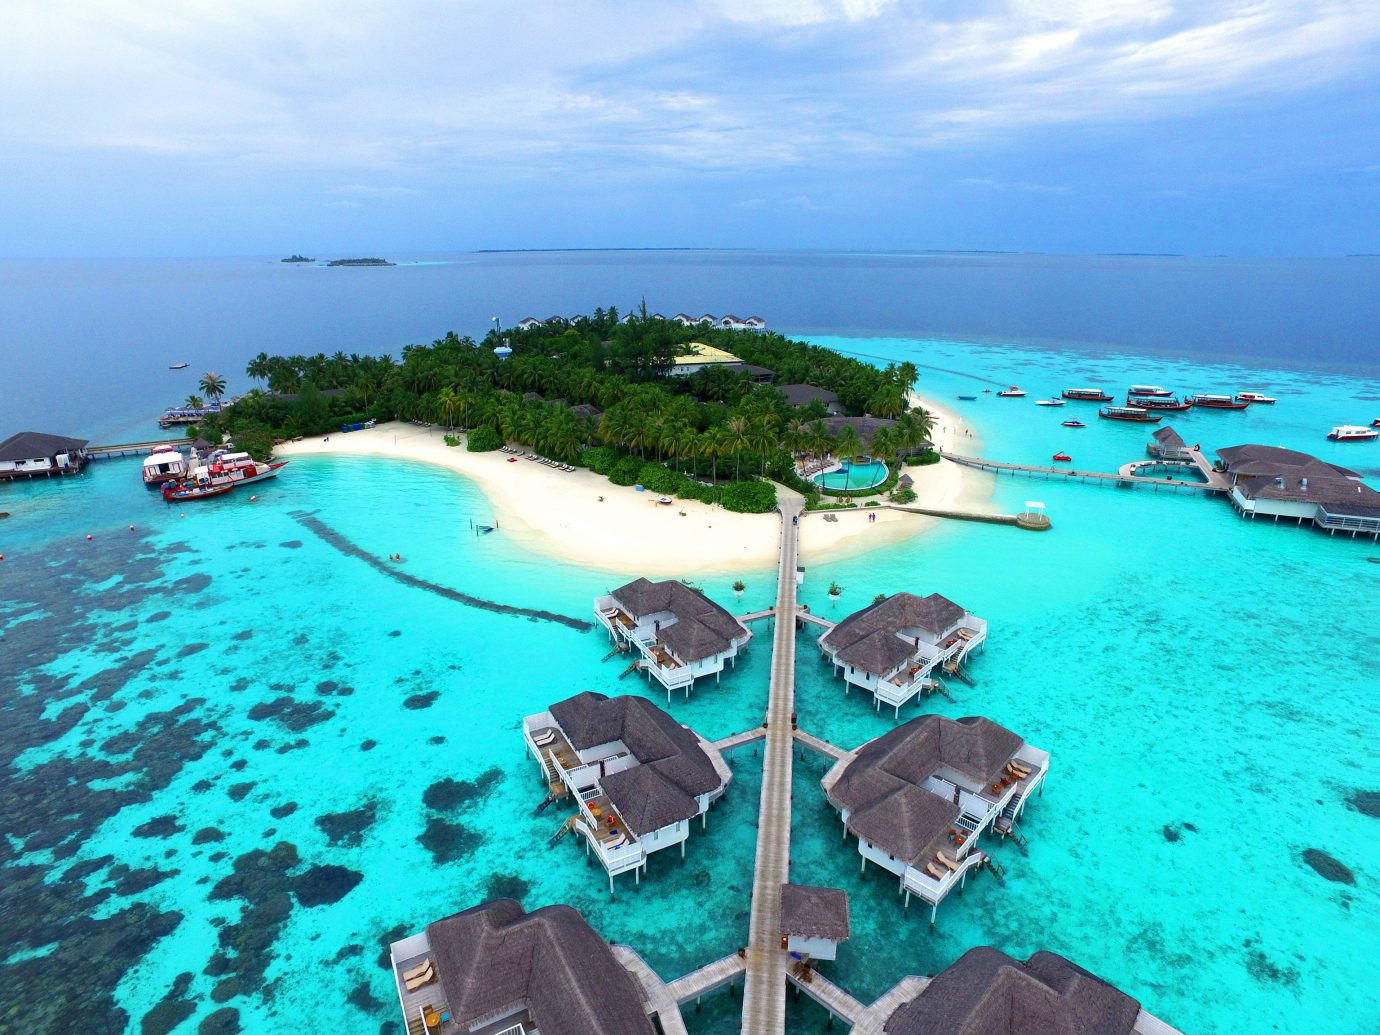 All-Inclusive Resorts Hotels sky water coastal and oceanic landforms outdoor Nature Sea Island promontory caribbean islet archipelago Lagoon tourism vacation tropics Resort bay Ocean swimming pool resort town reef Coast leisure atoll day